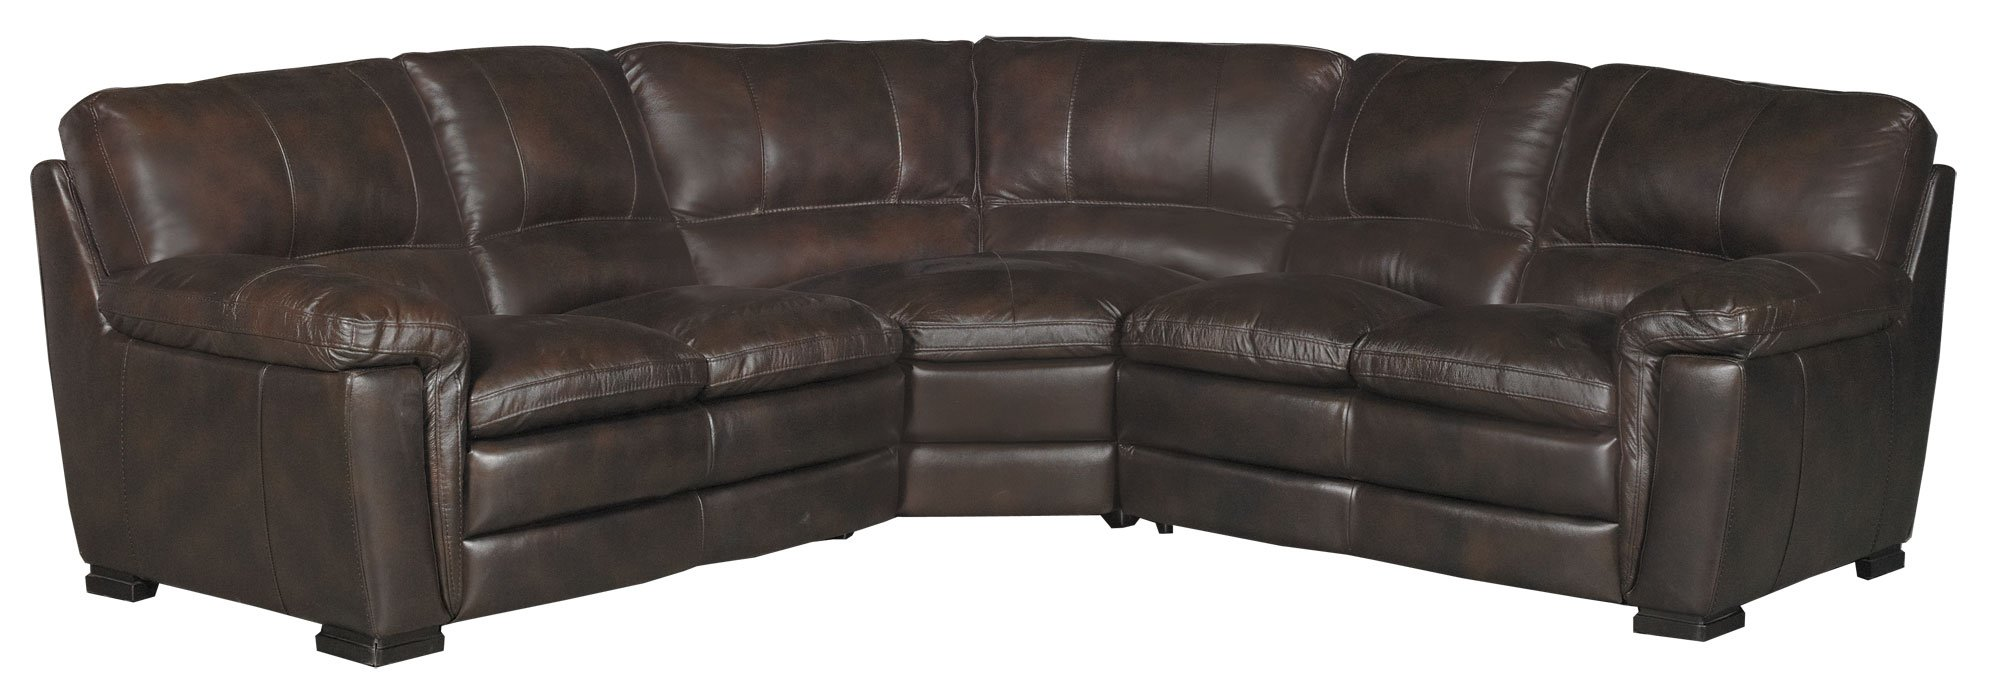 Casual Contemporary 3-Piece Brown Leather Sectional - Tanner  sc 1 st  RC Willey : rc willey sectional - Sectionals, Sofas & Couches